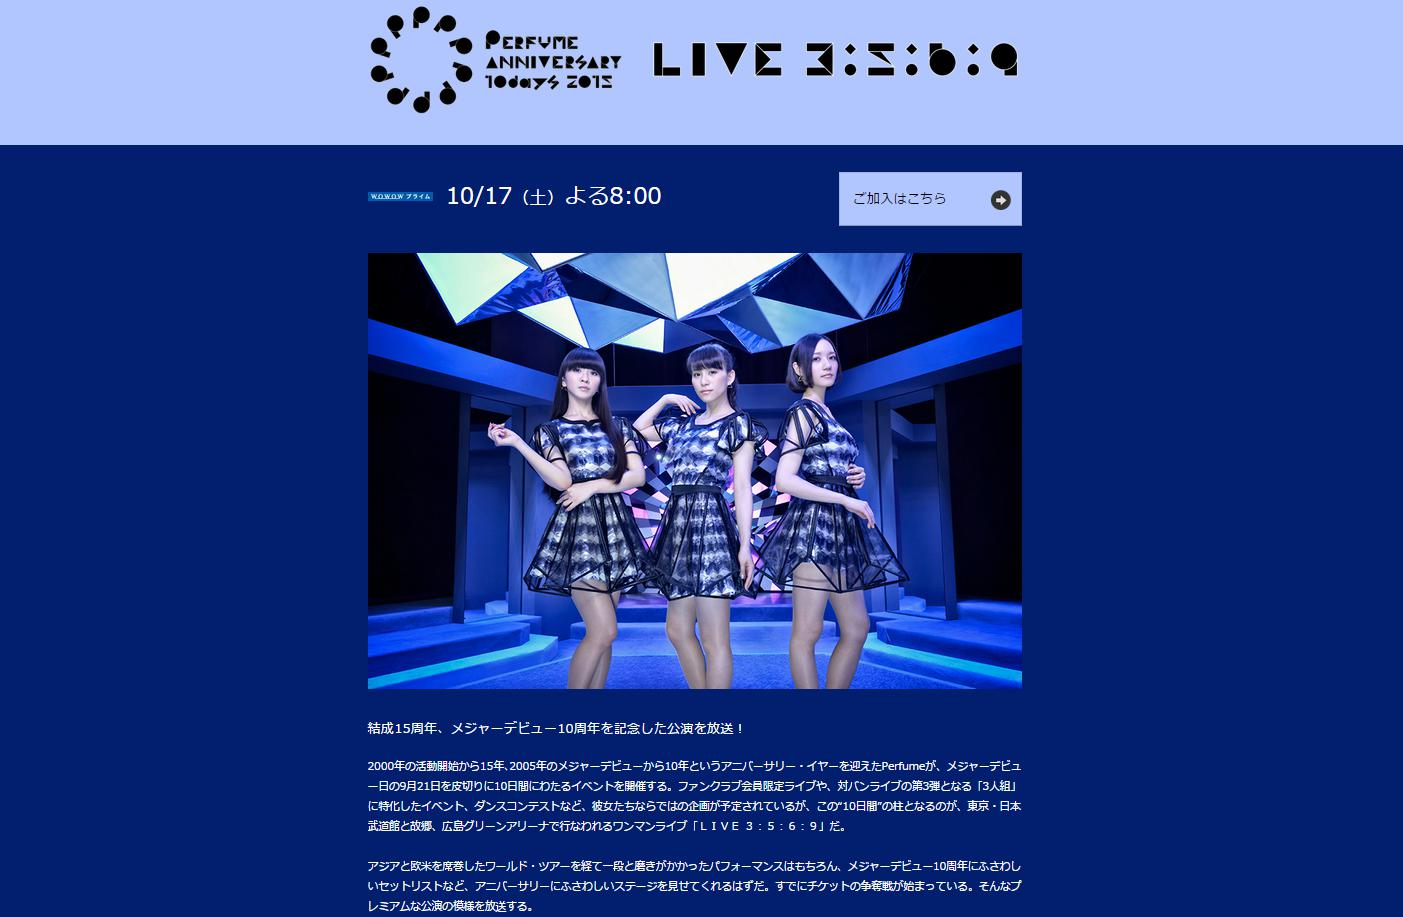 WOWOW Perfume Anniversary 10days 2015 PPPPPPPPPP